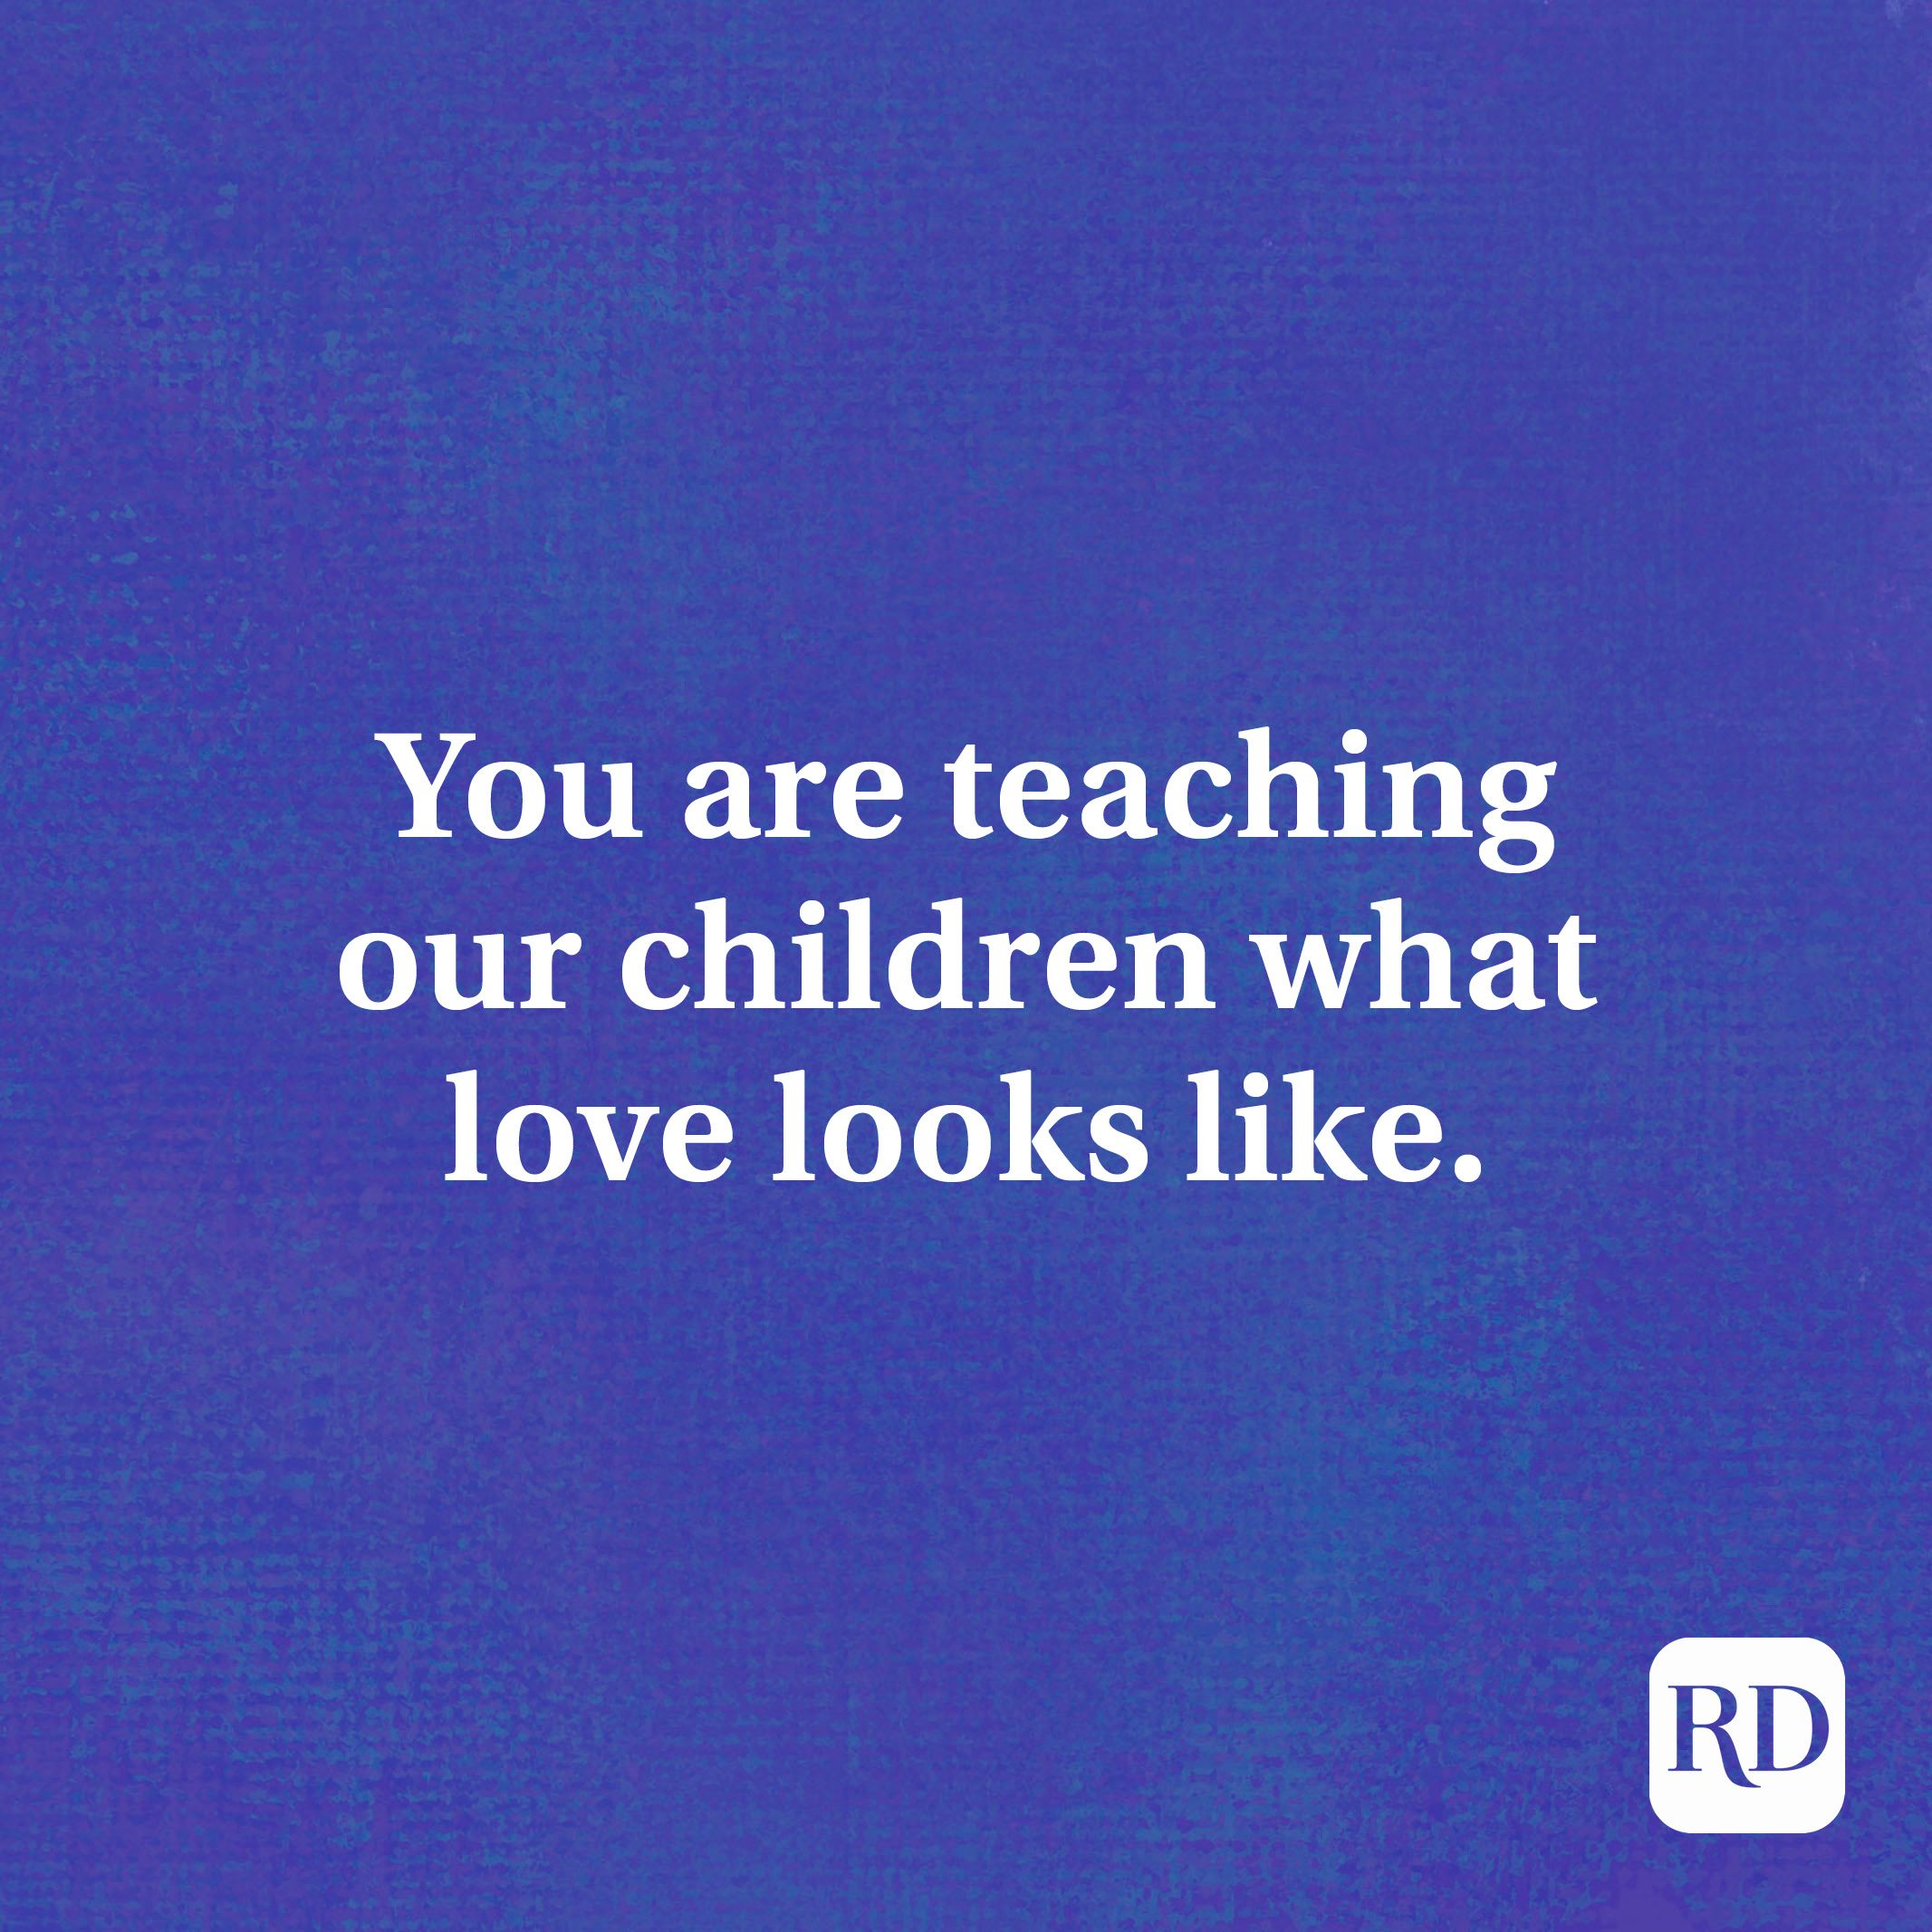 You are teaching our children what love looks like.